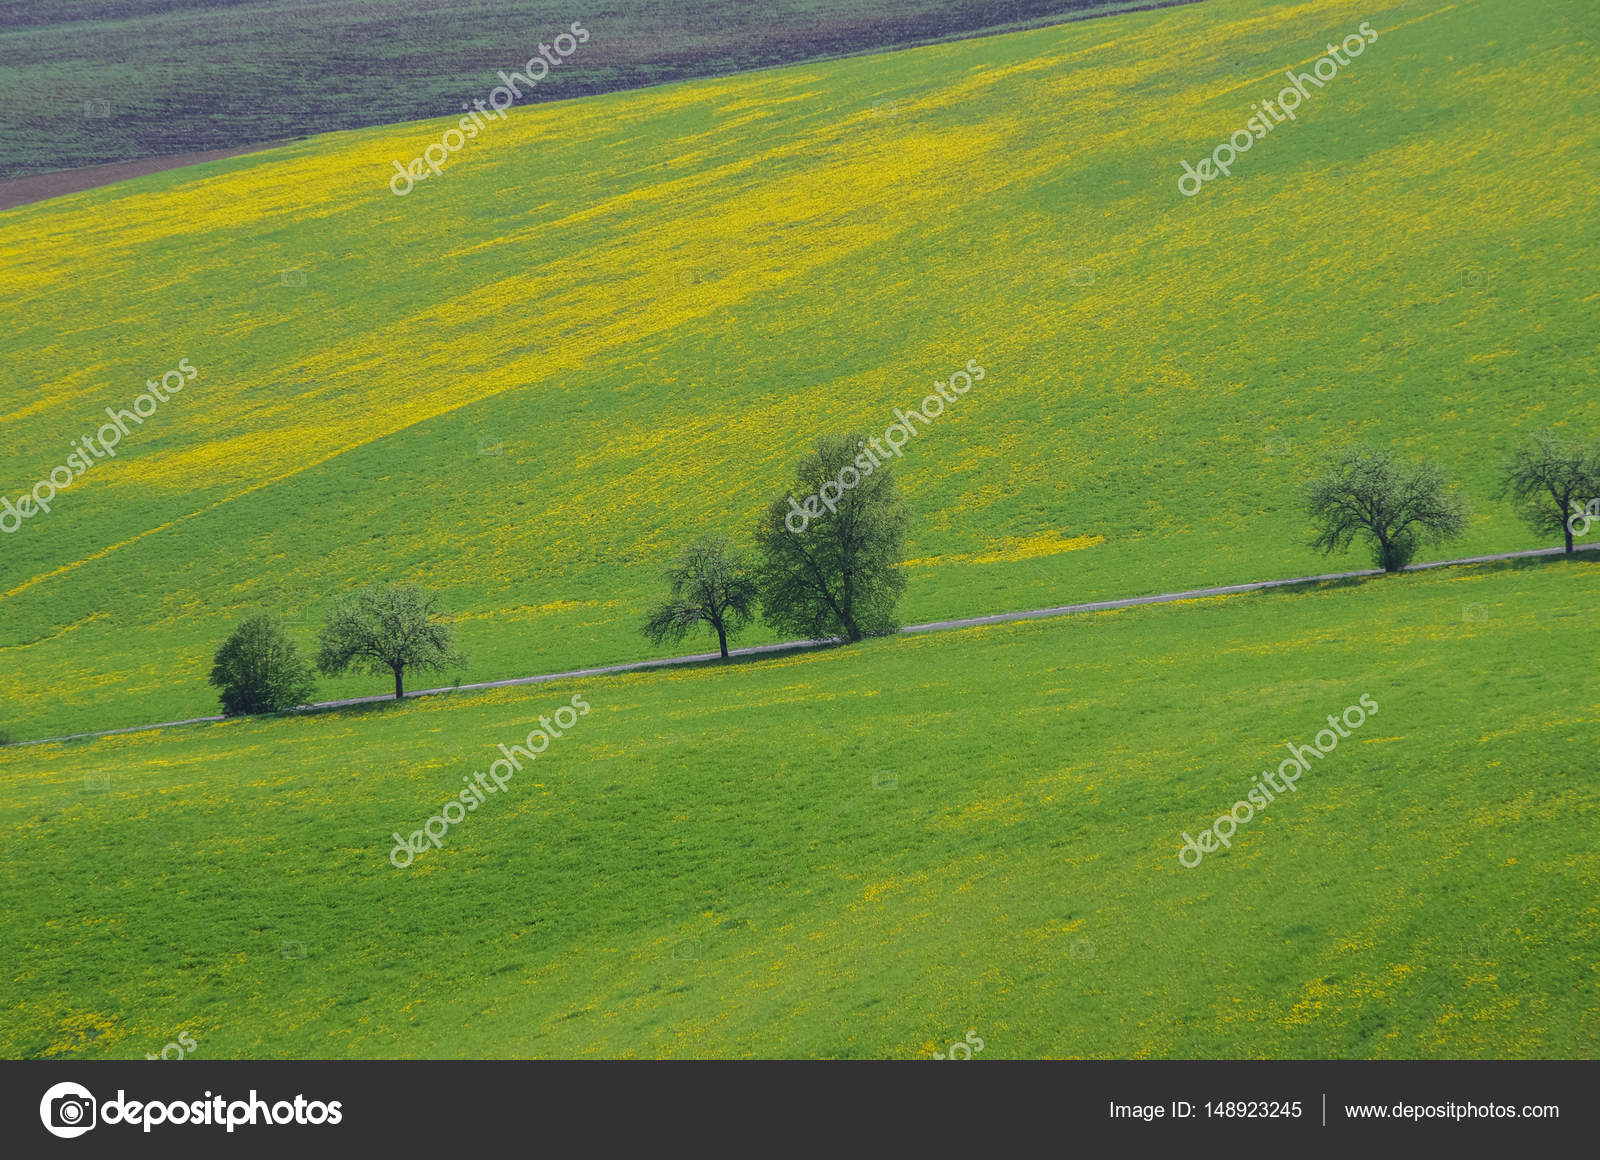 Empty asphalt countryside road through meadow with yellow